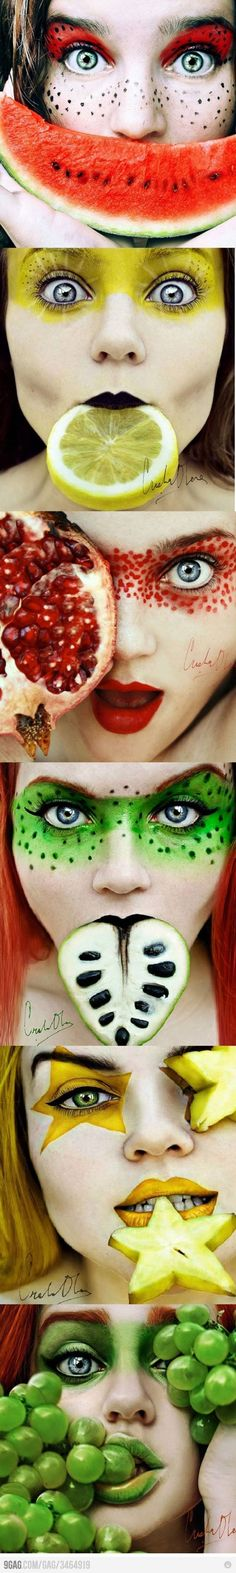 Just some fruits by cristina otero | StyleCaster - would be interesting to see what it would look like worked into the whole face.